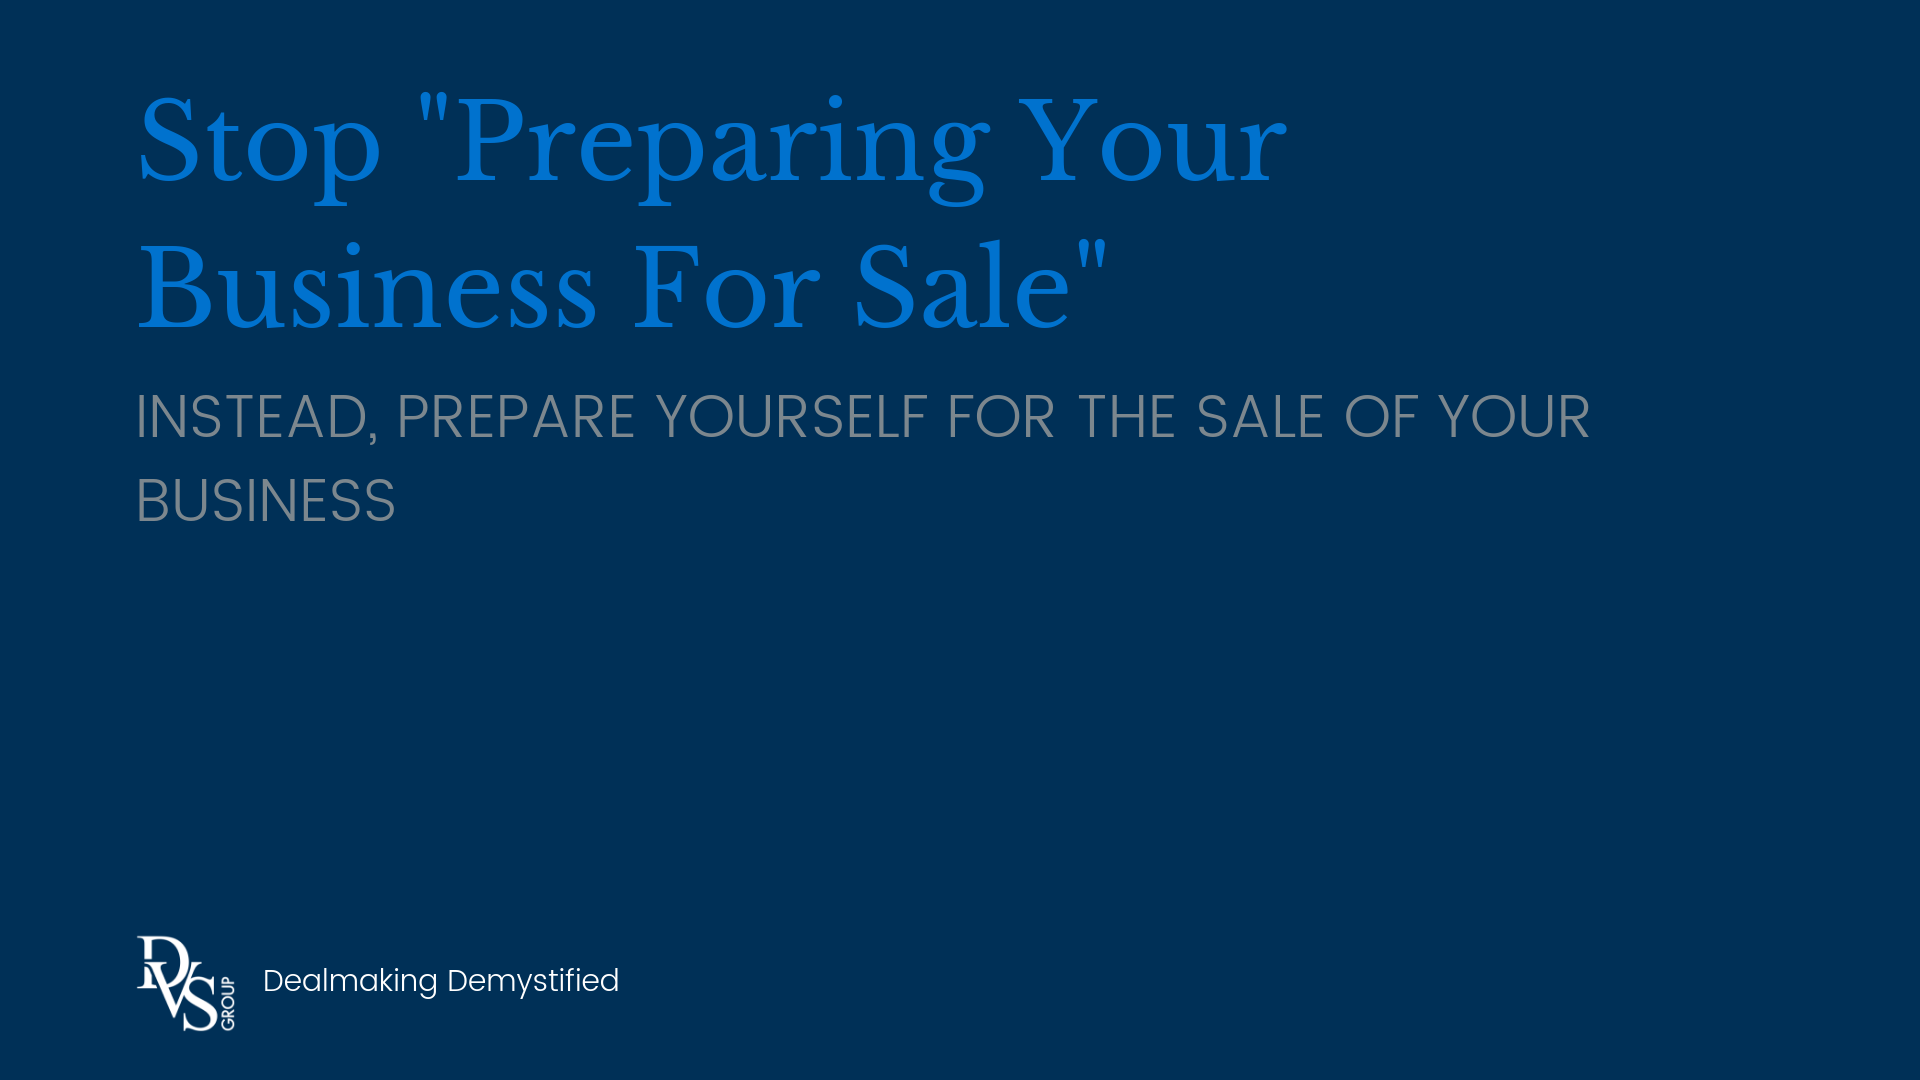 Stop _Preparing Your Business For Sale_